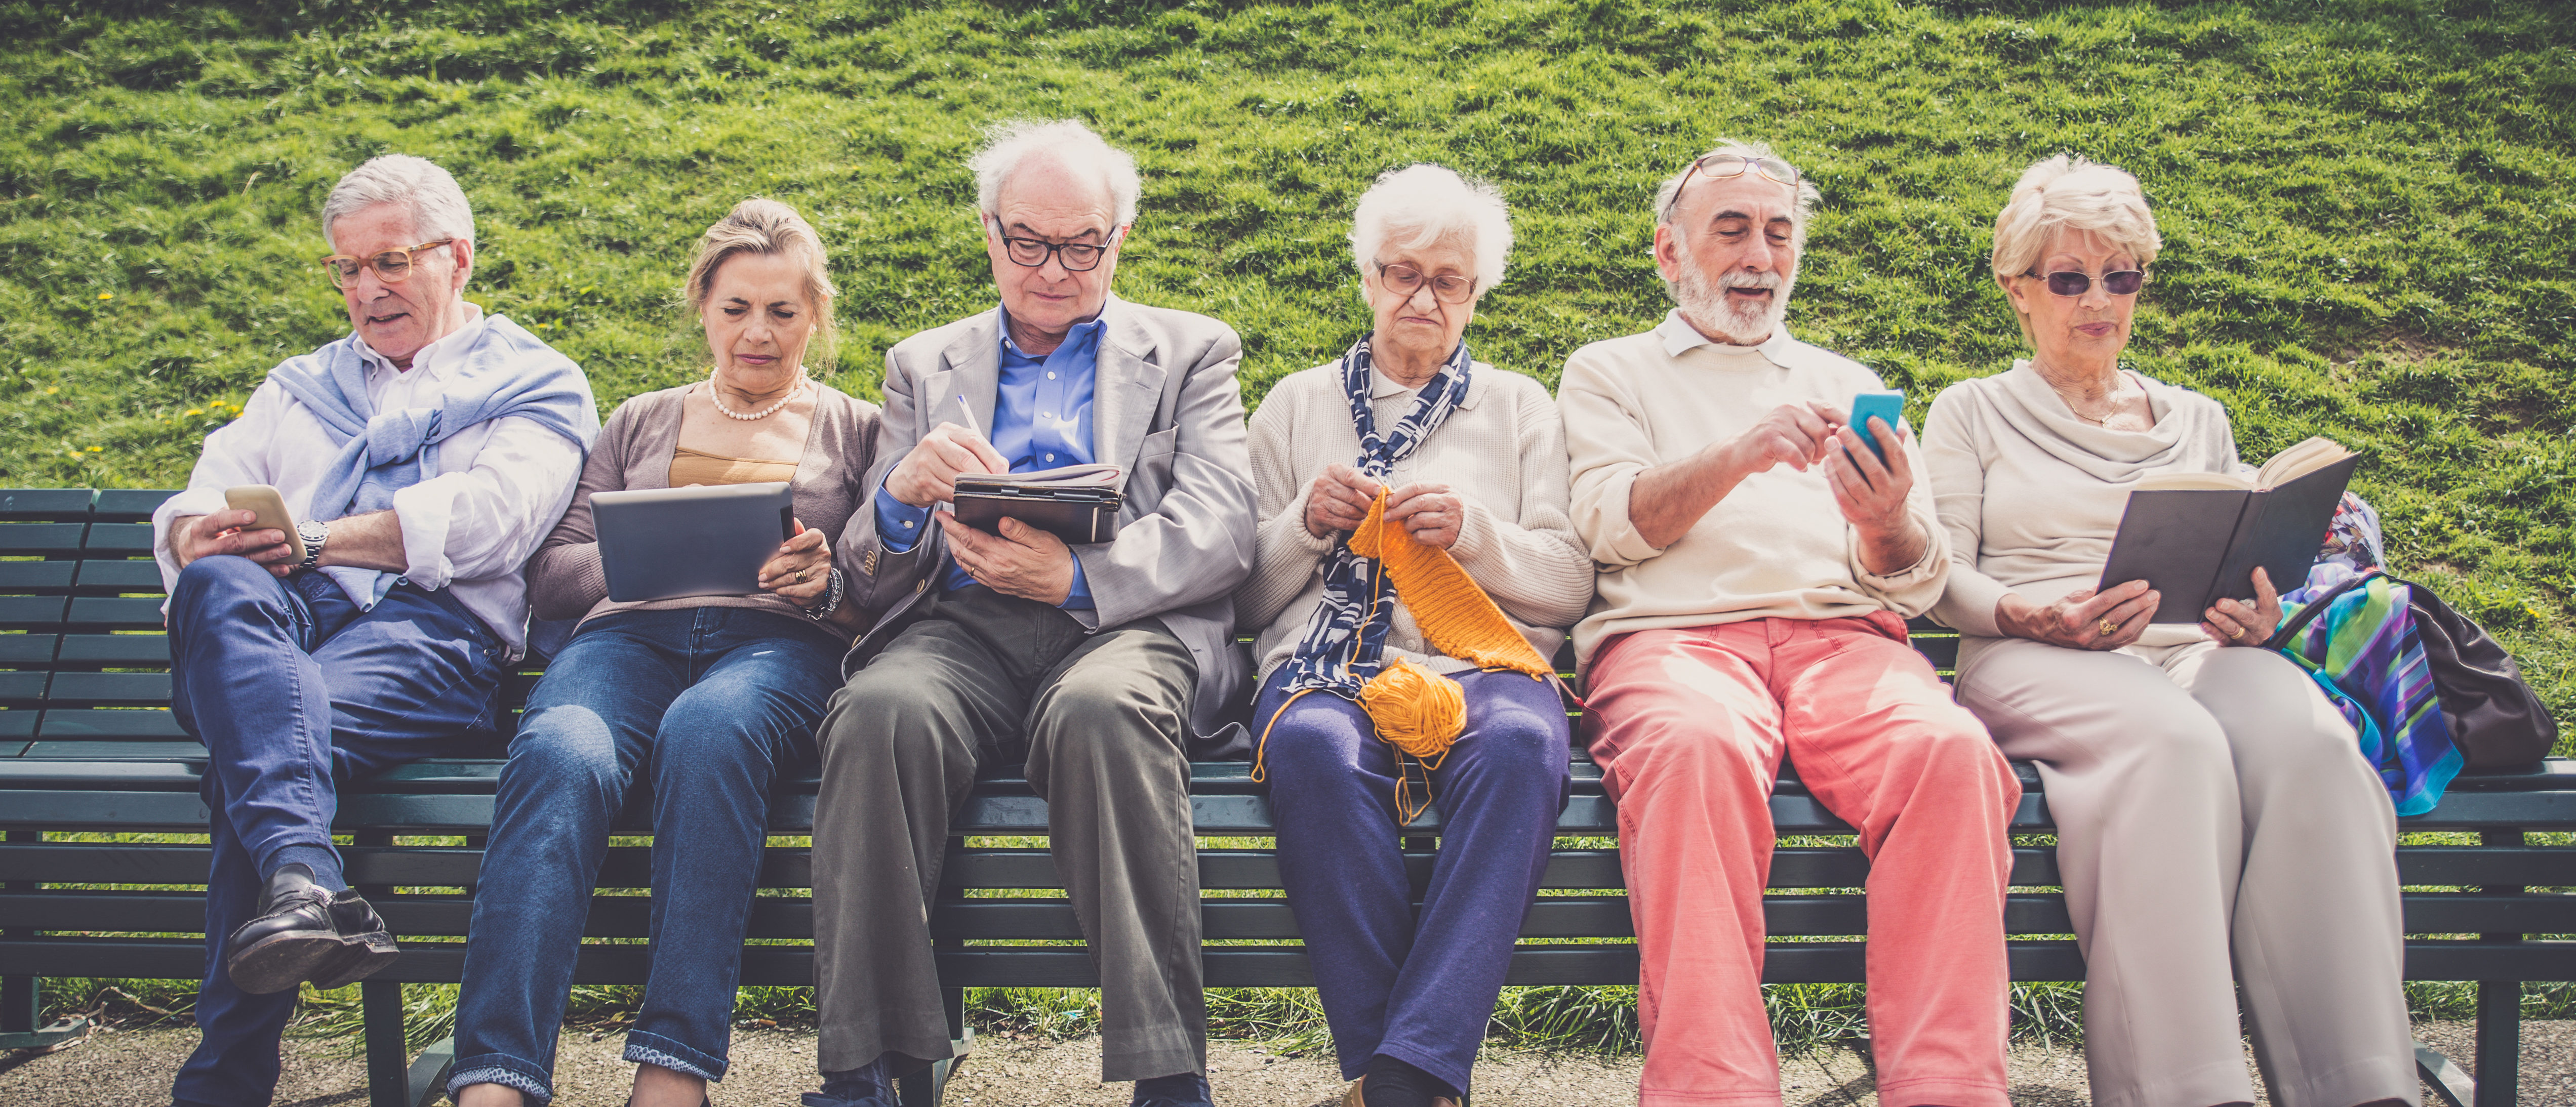 social media and the elderly Social media is a great means for the elderly to keep in touch with friends and family and not feel lonely while some may believe social media use is exclusive to the younger set, recent statistics prove otherwise.